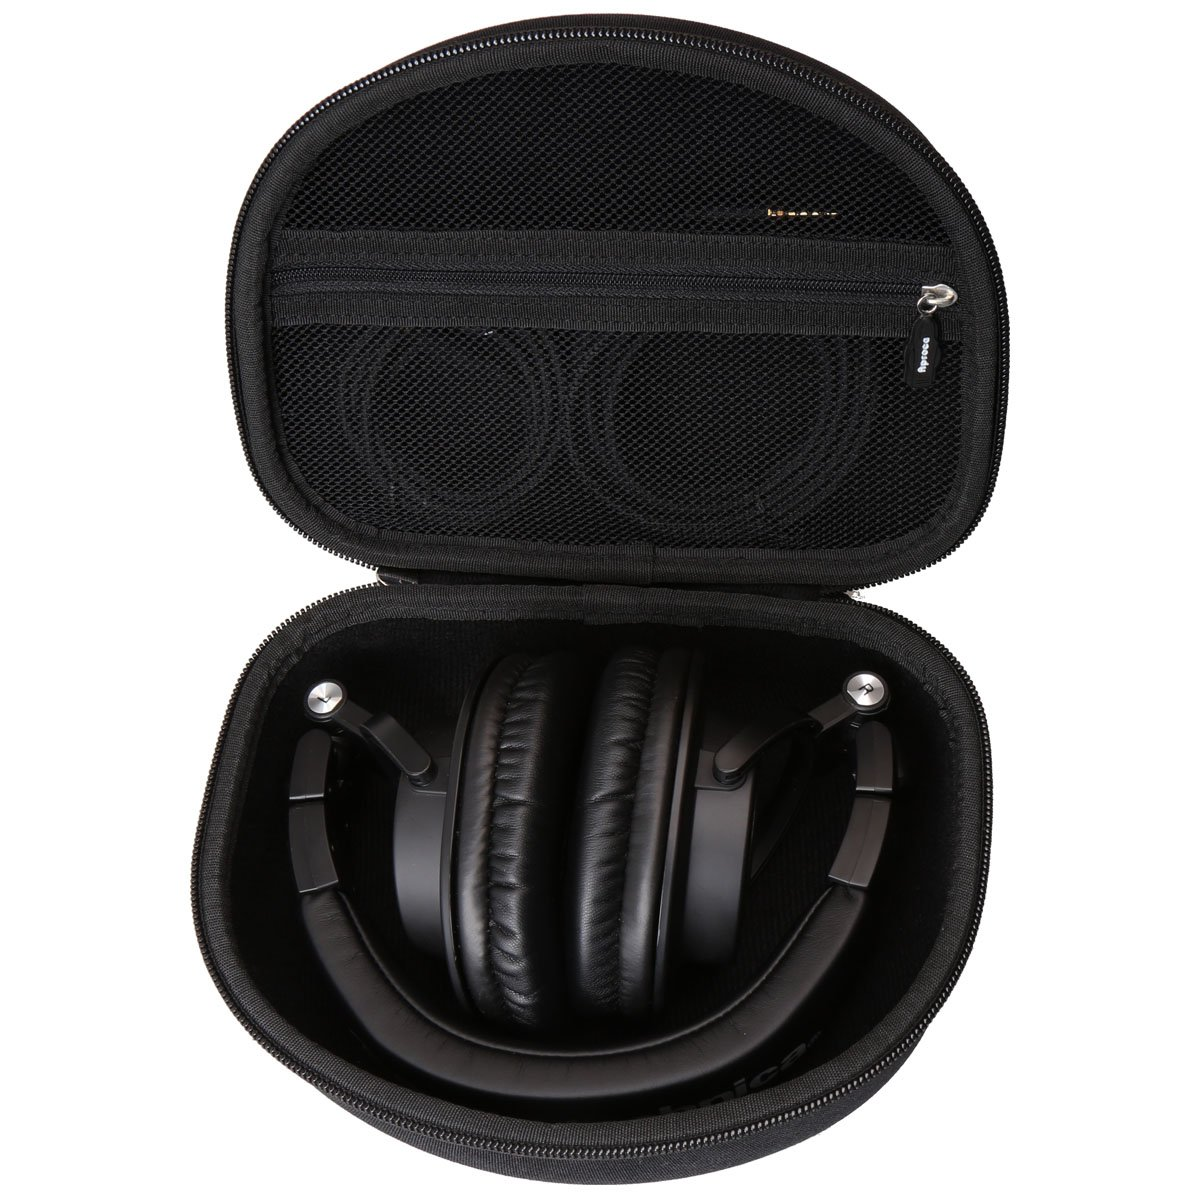 Hard Carry Travel Bag Case Compatible Audio Technica Ath M50x M40x Monitoring Headphone Professional Monitor Headphones M50xmg M30x M70x By Aproca Black